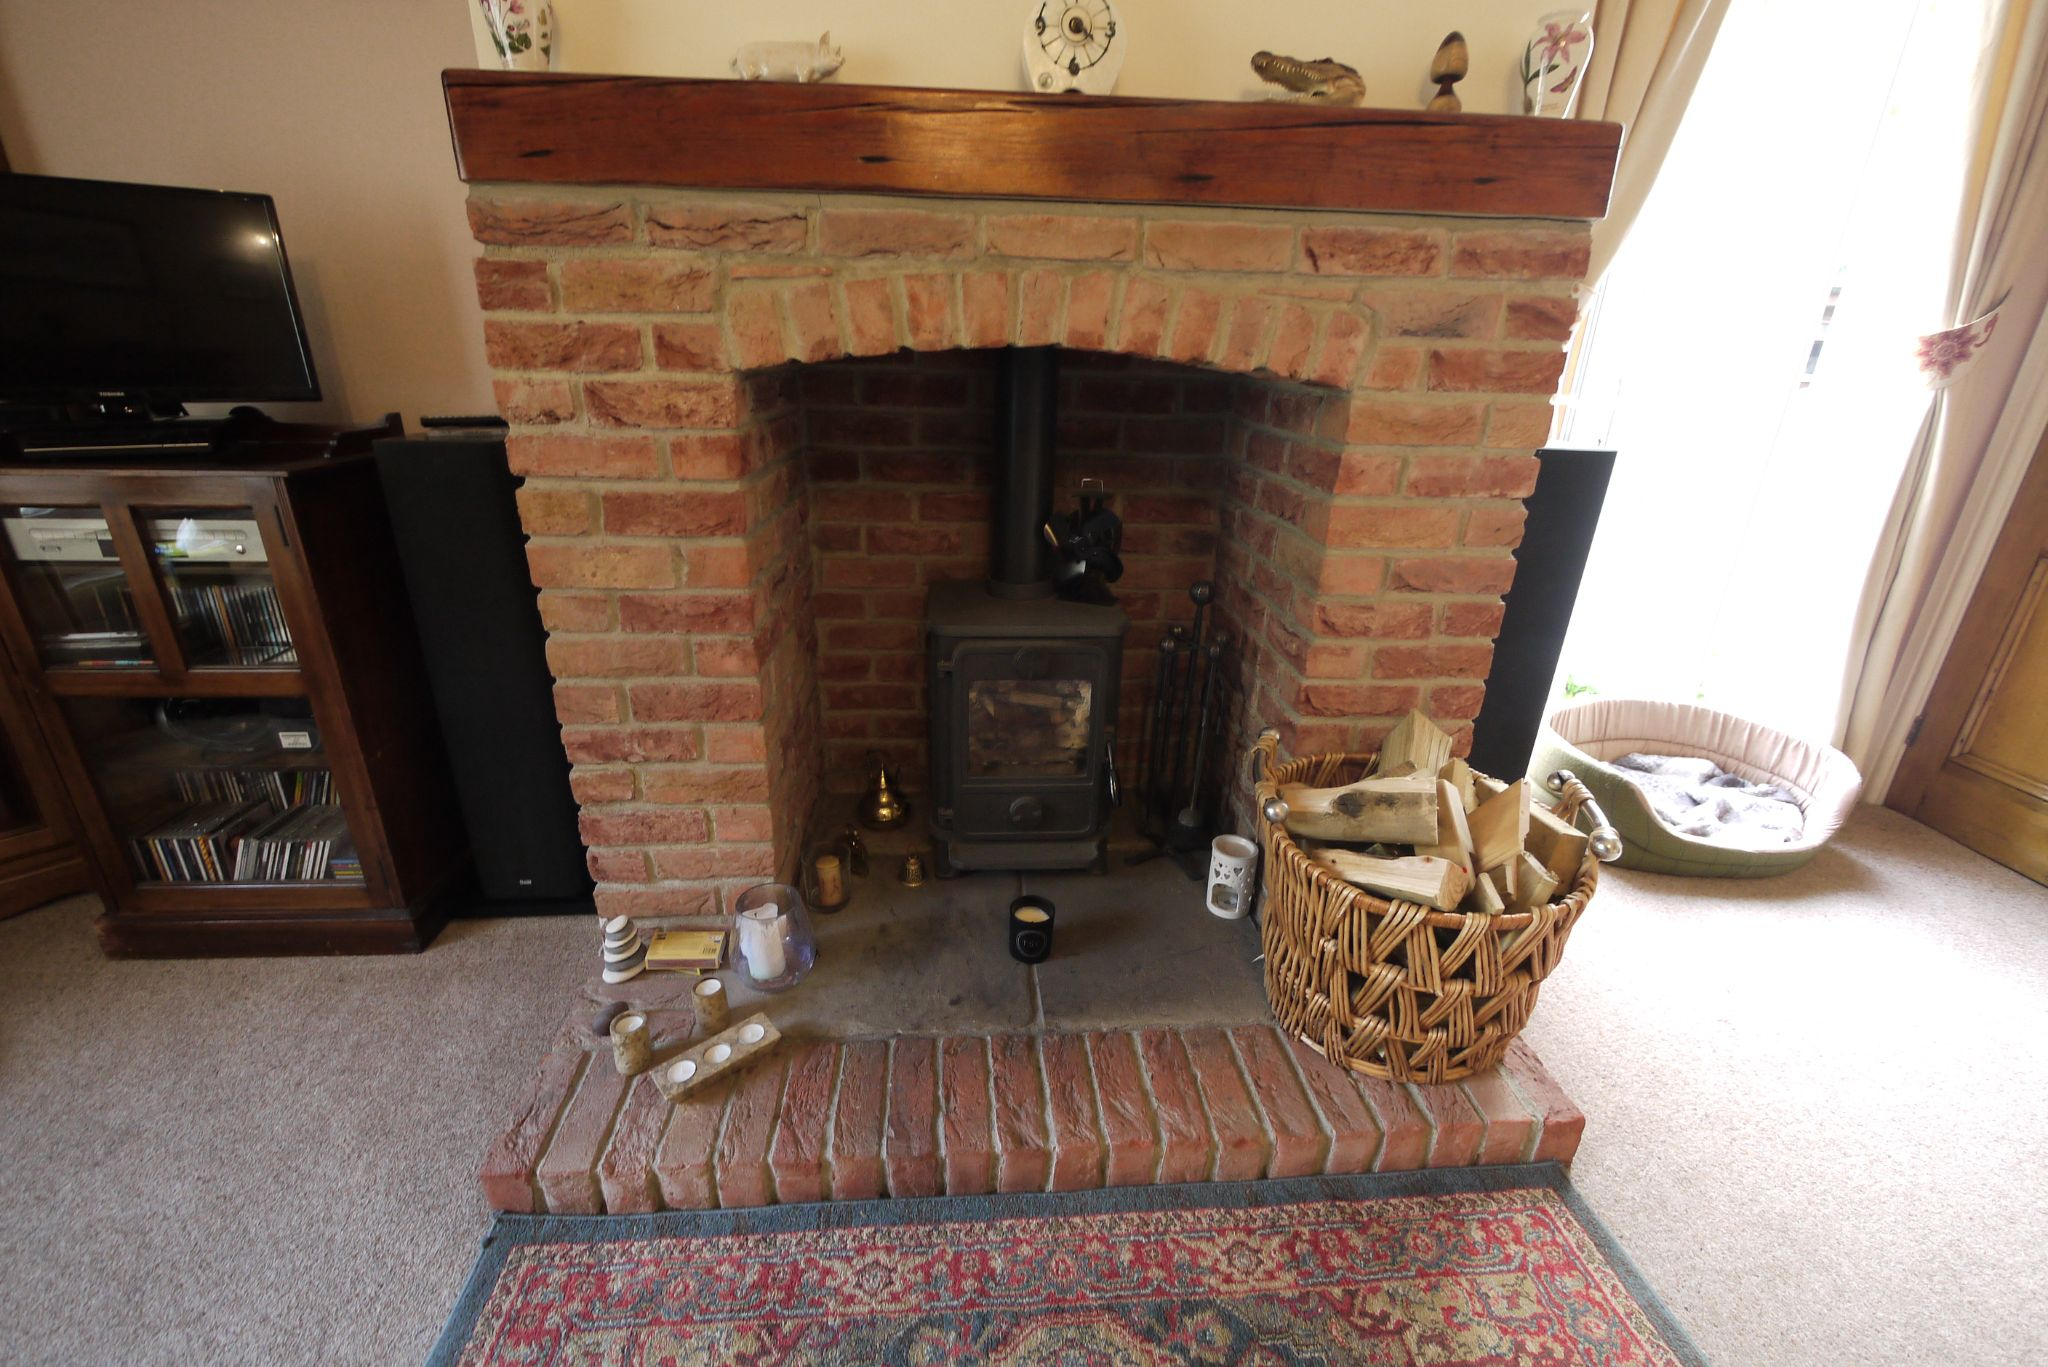 3 bedroom semi-detached house For Sale in Brighouse - Photograph 11.